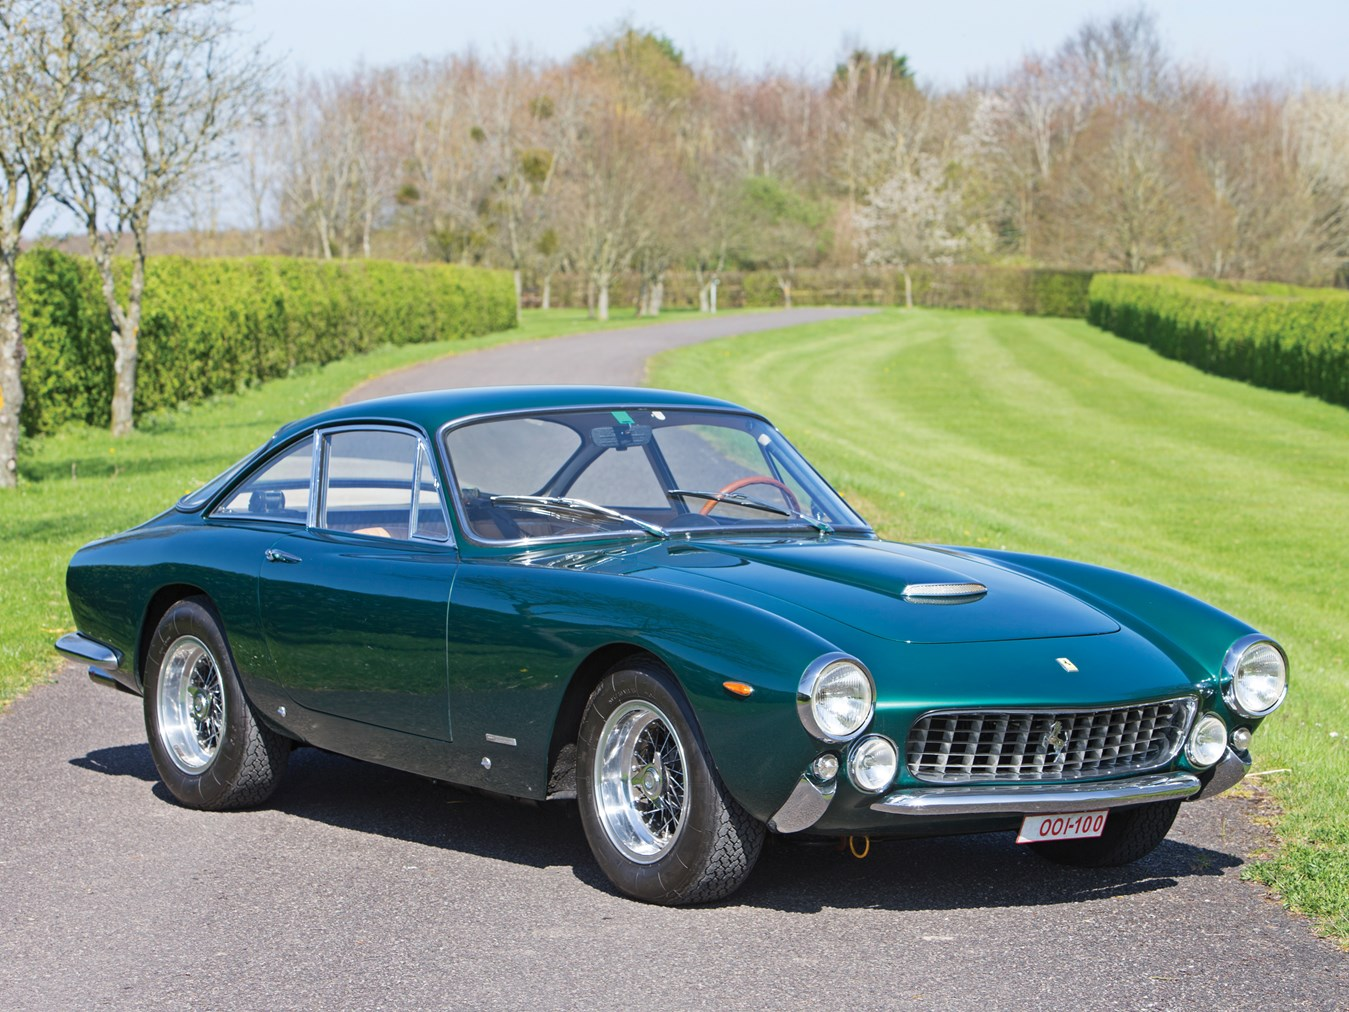 rm sotheby 39 s 1963 ferrari 250 gt l berlinetta 39 lusso 39 by. Black Bedroom Furniture Sets. Home Design Ideas